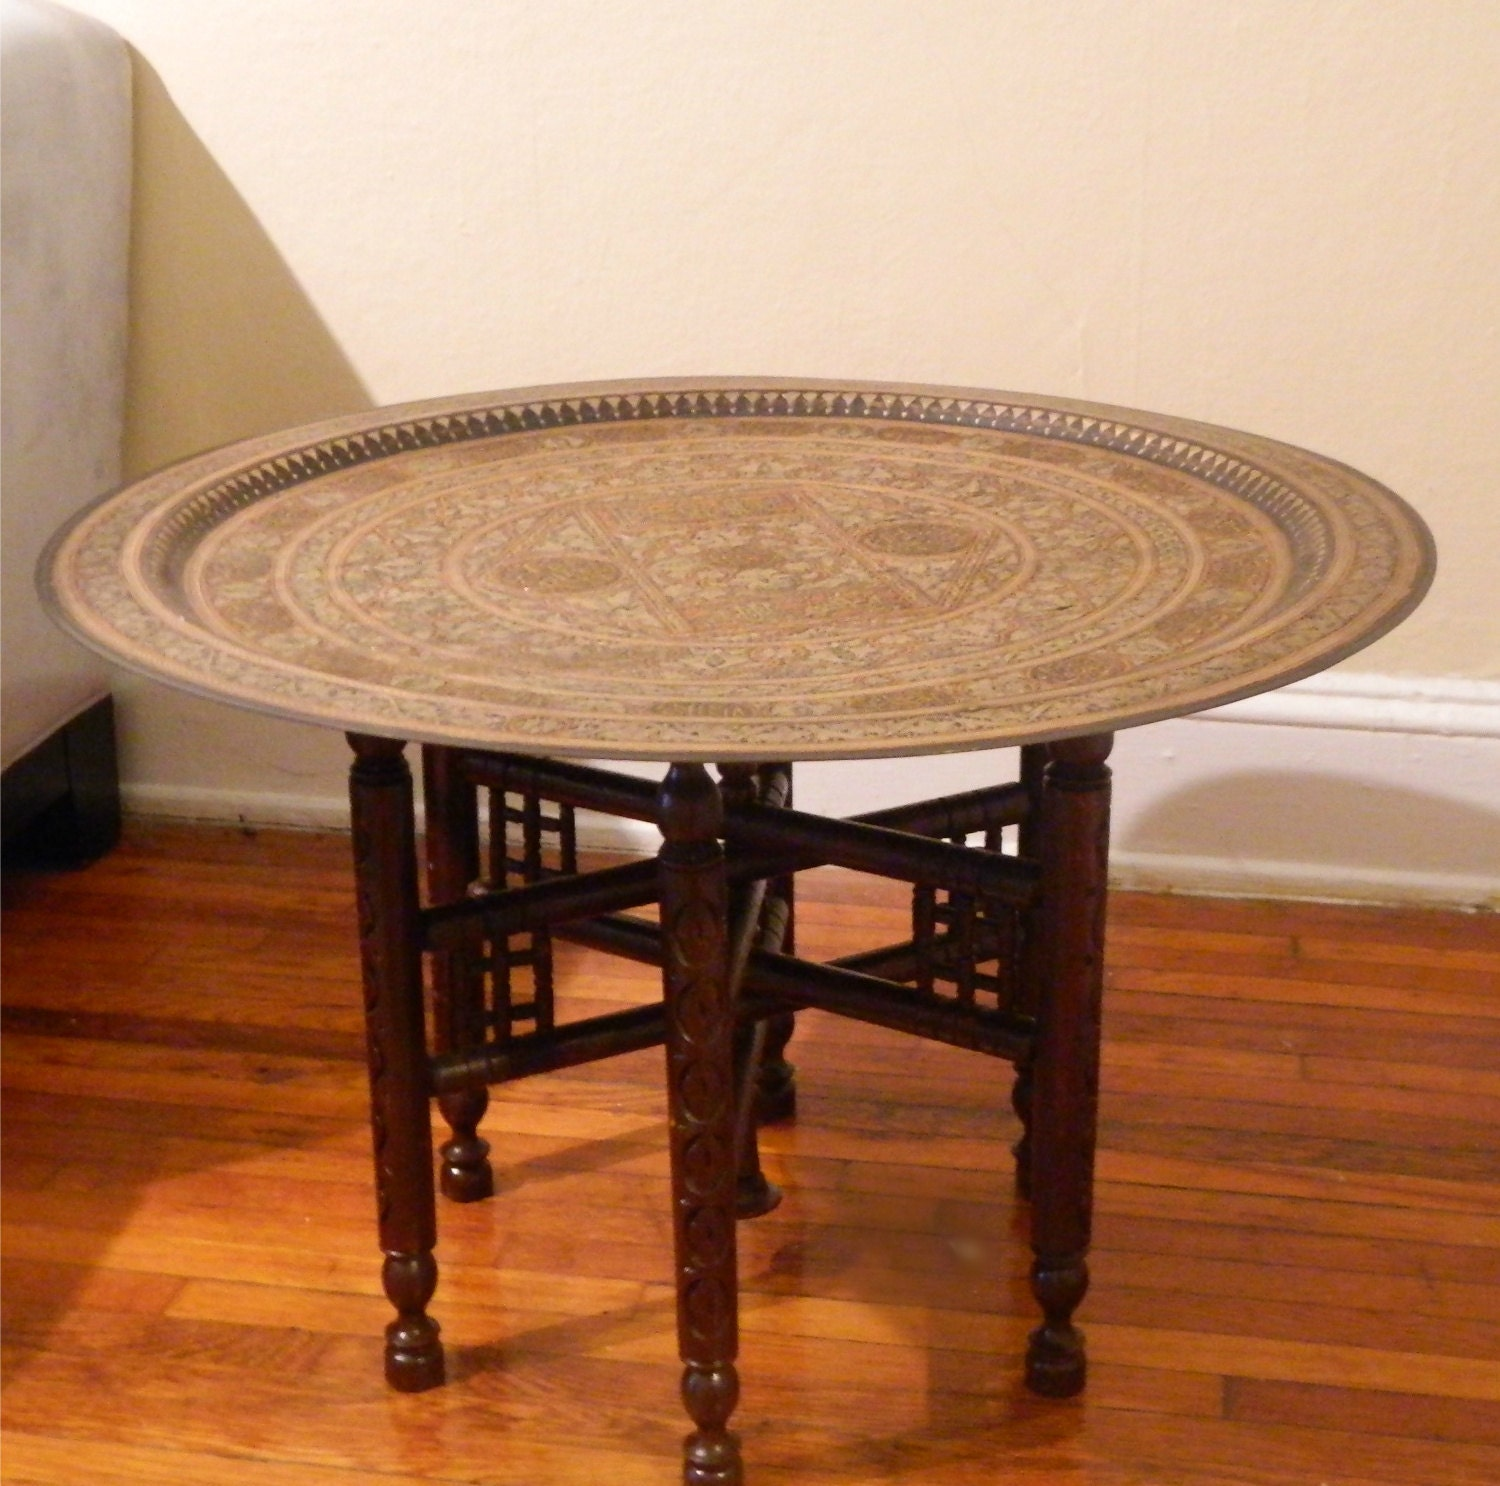 Etsy Round Coffee Tables: Sale: Round Moroccan Hammered Brass Tray Table